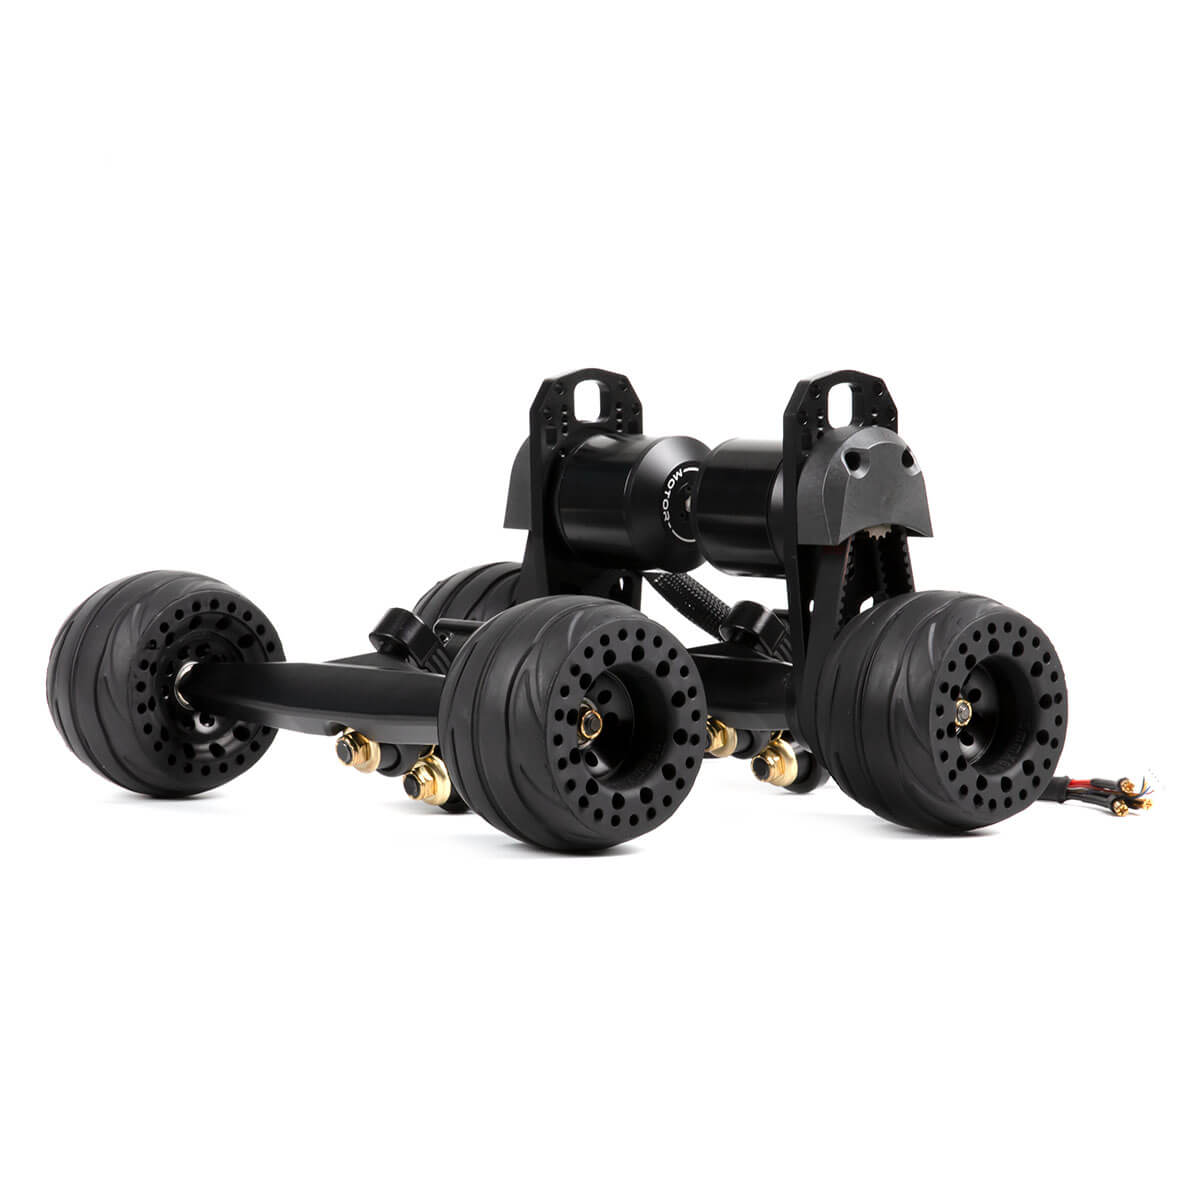 BOUNDMOTOR Belt Drive Motor Kit with 105mm airless wheels